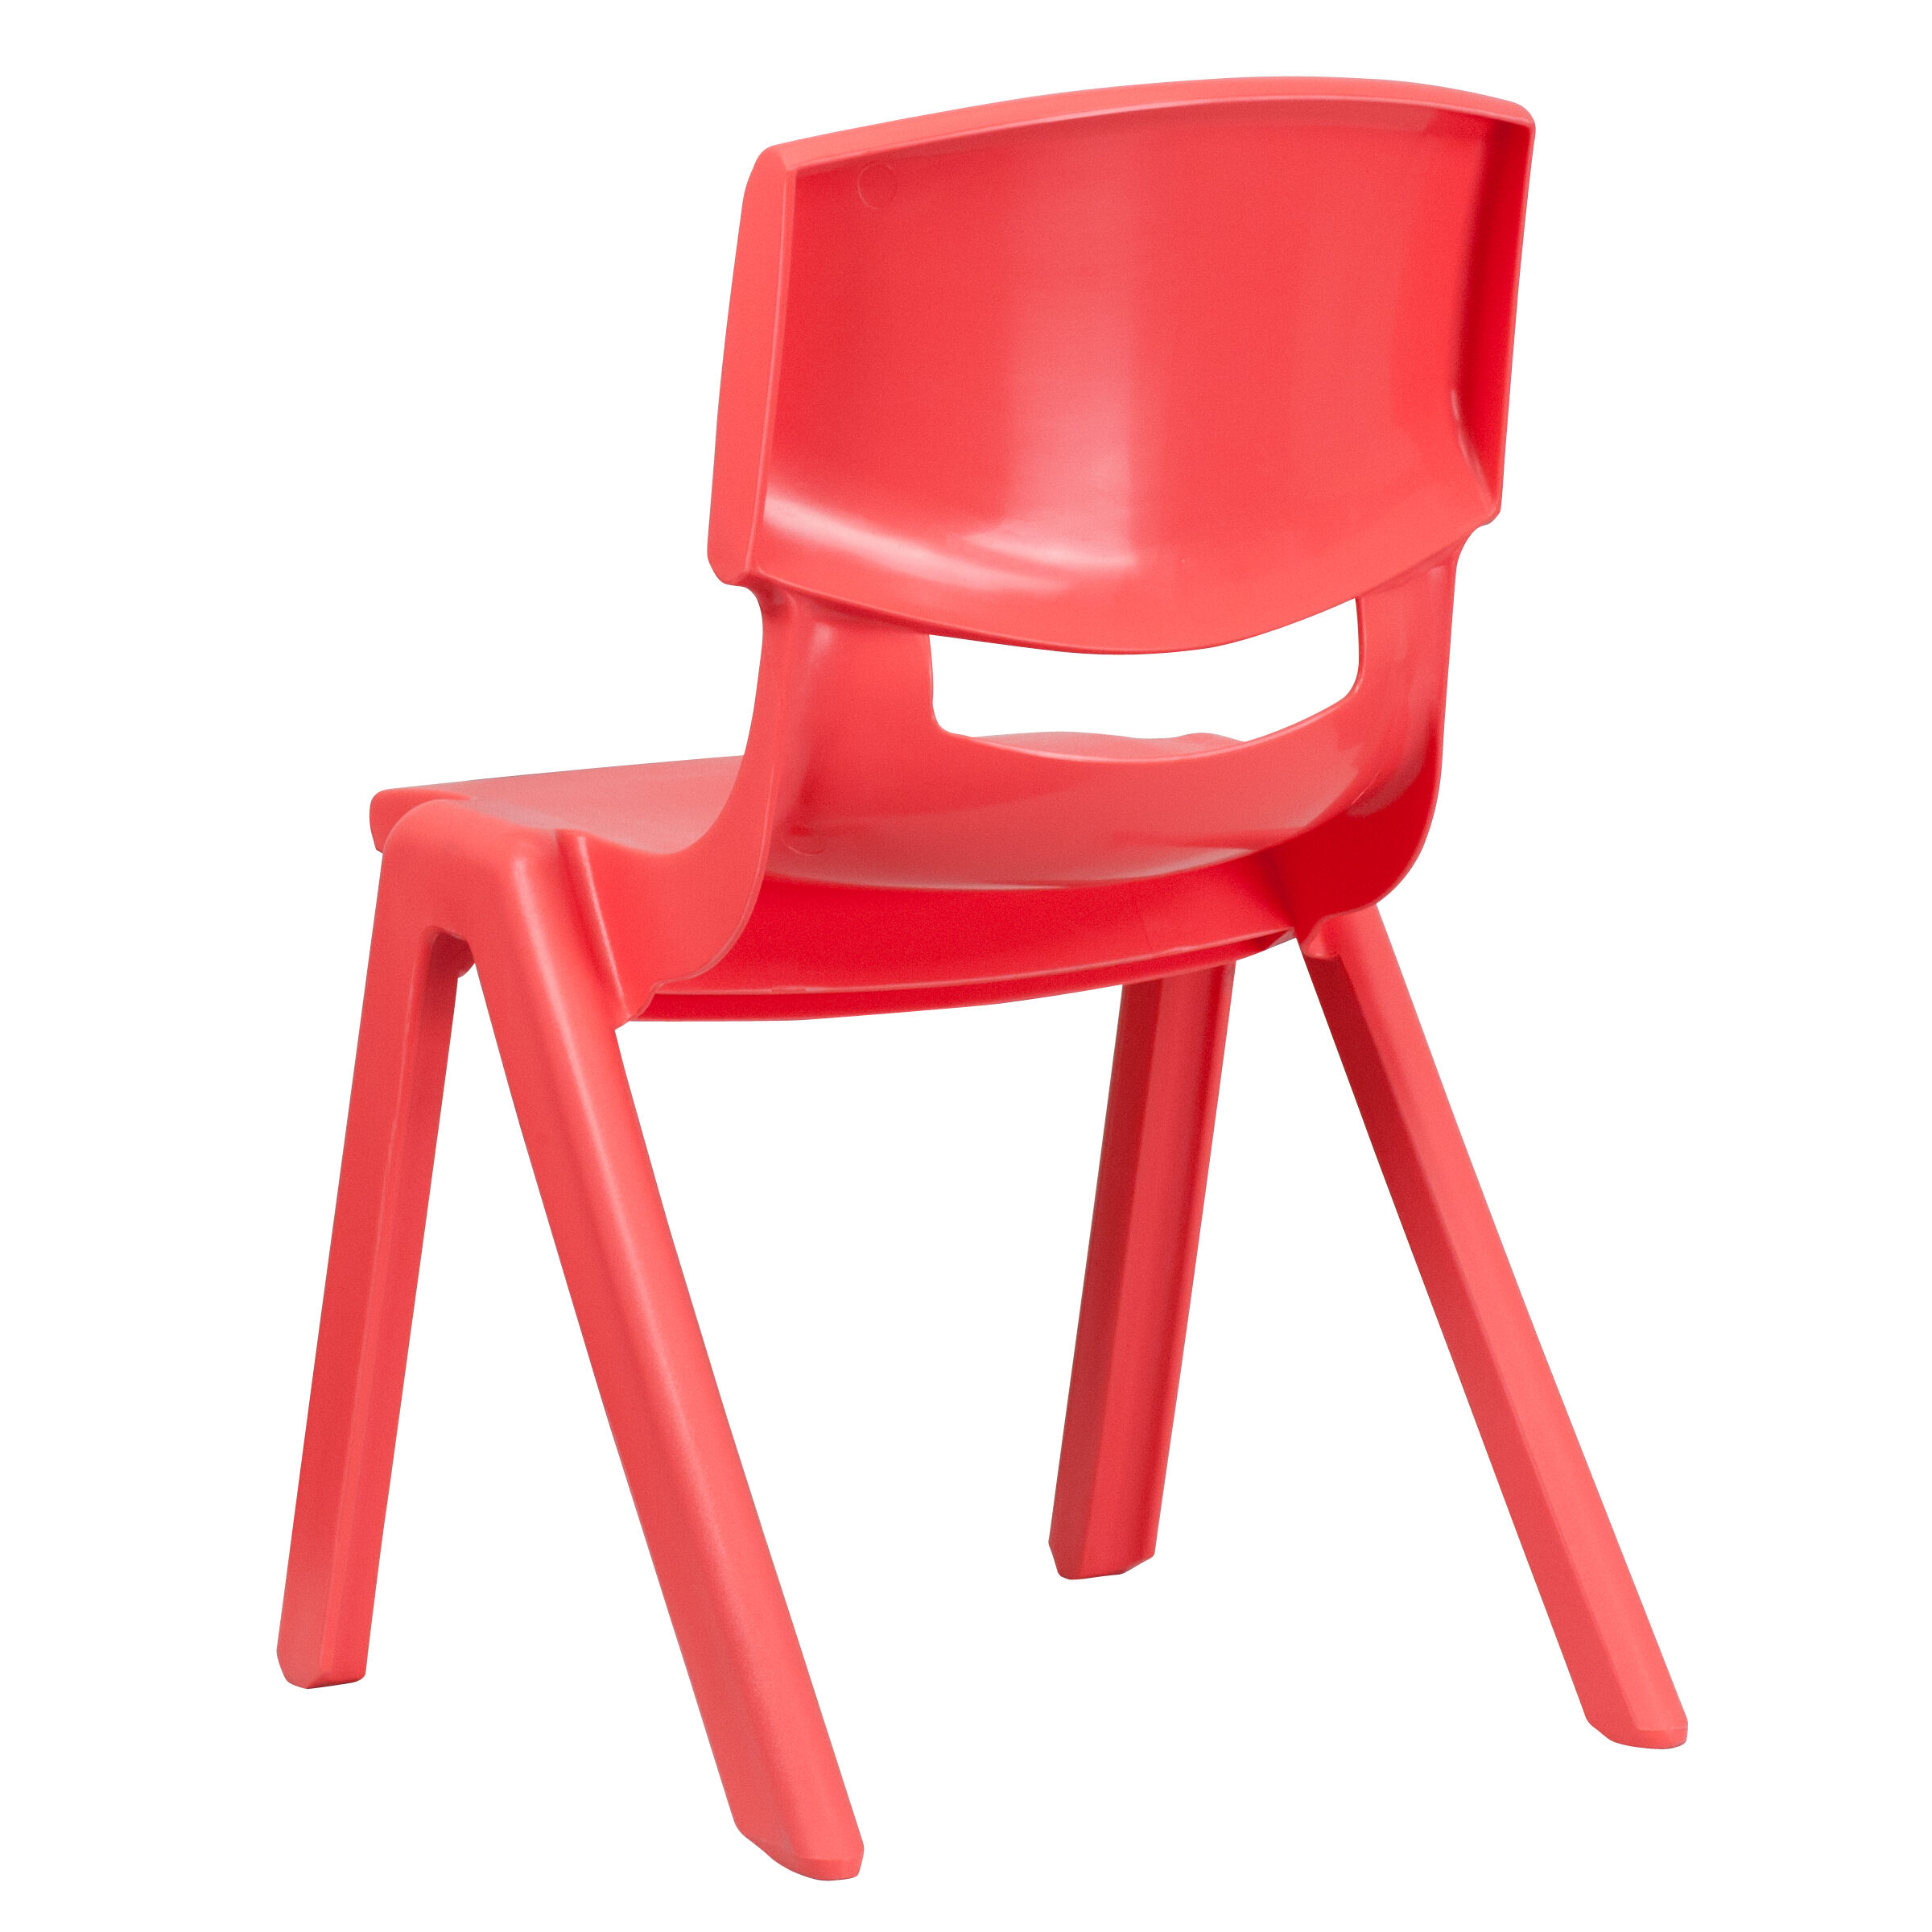 plastic chairs target dining chair covers at red stack yu ycx 005 gg bizchair